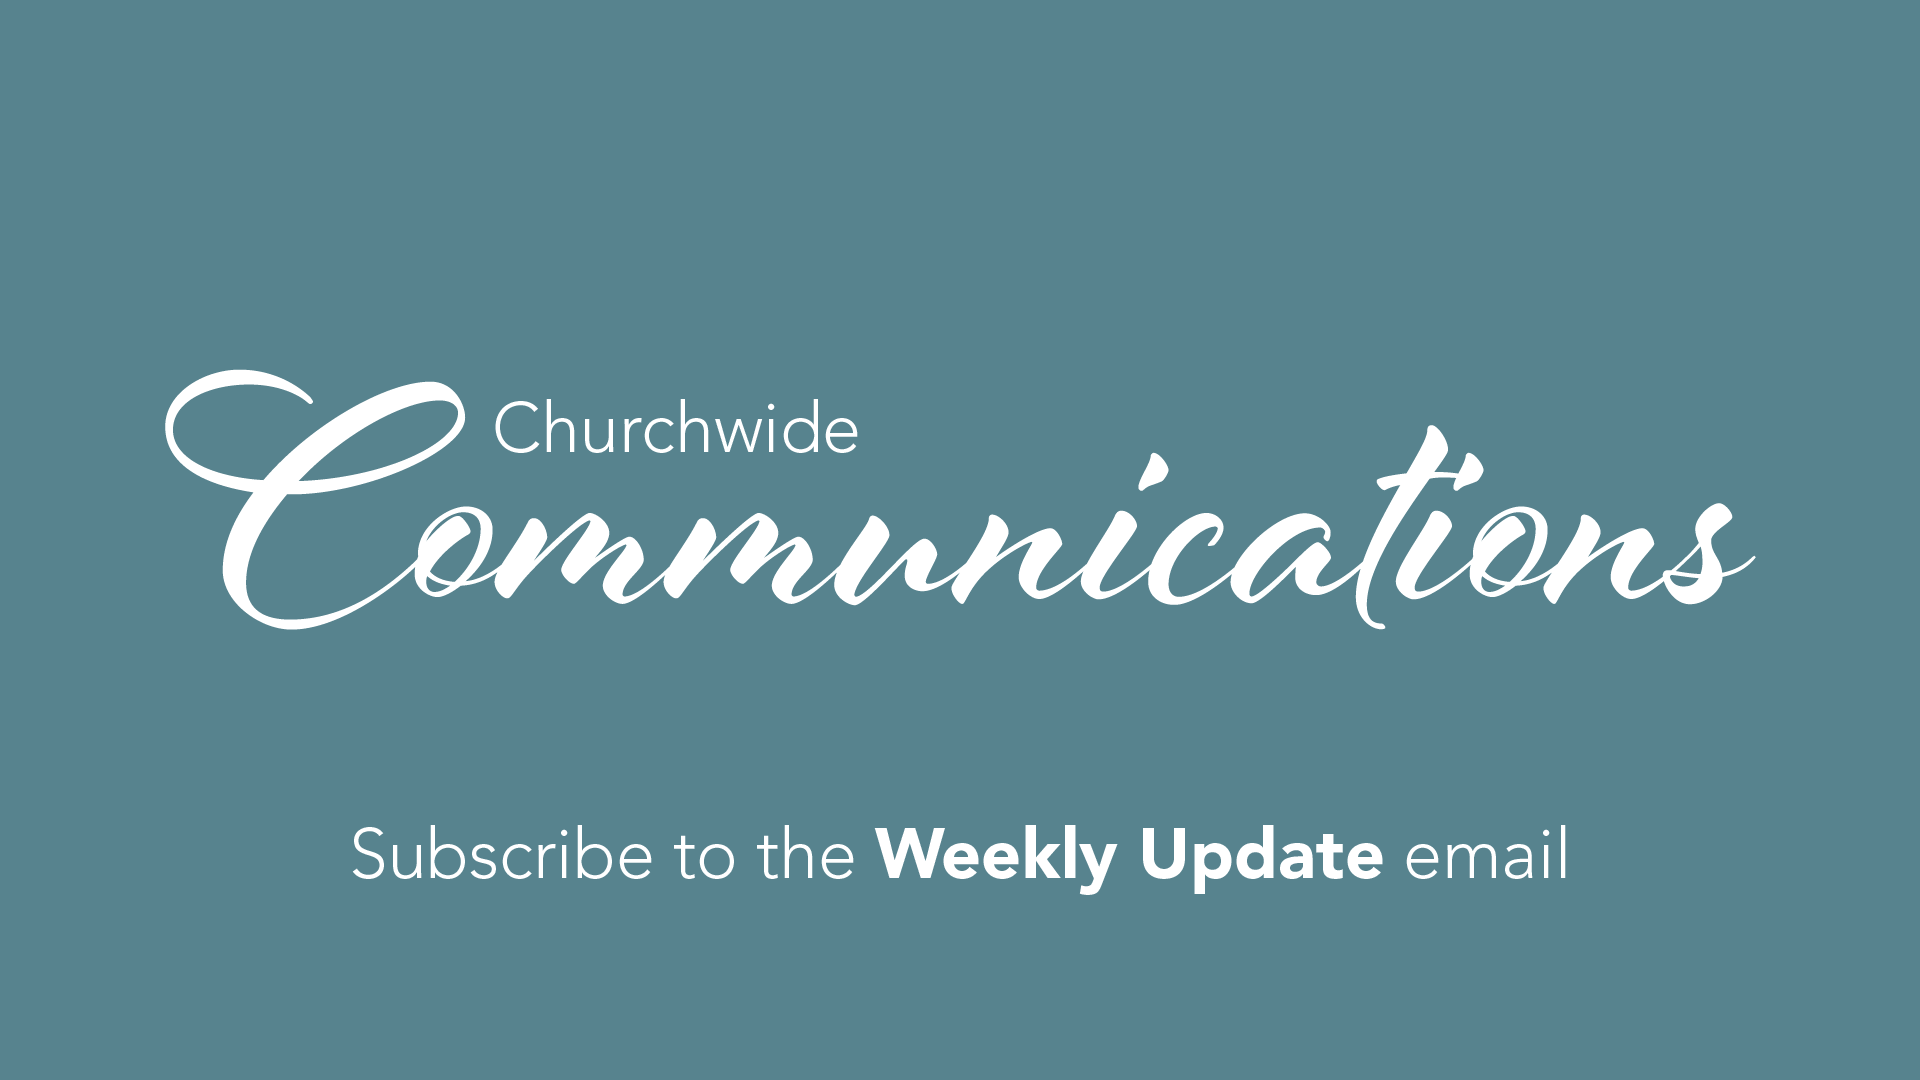 Church Communications Email Graphic